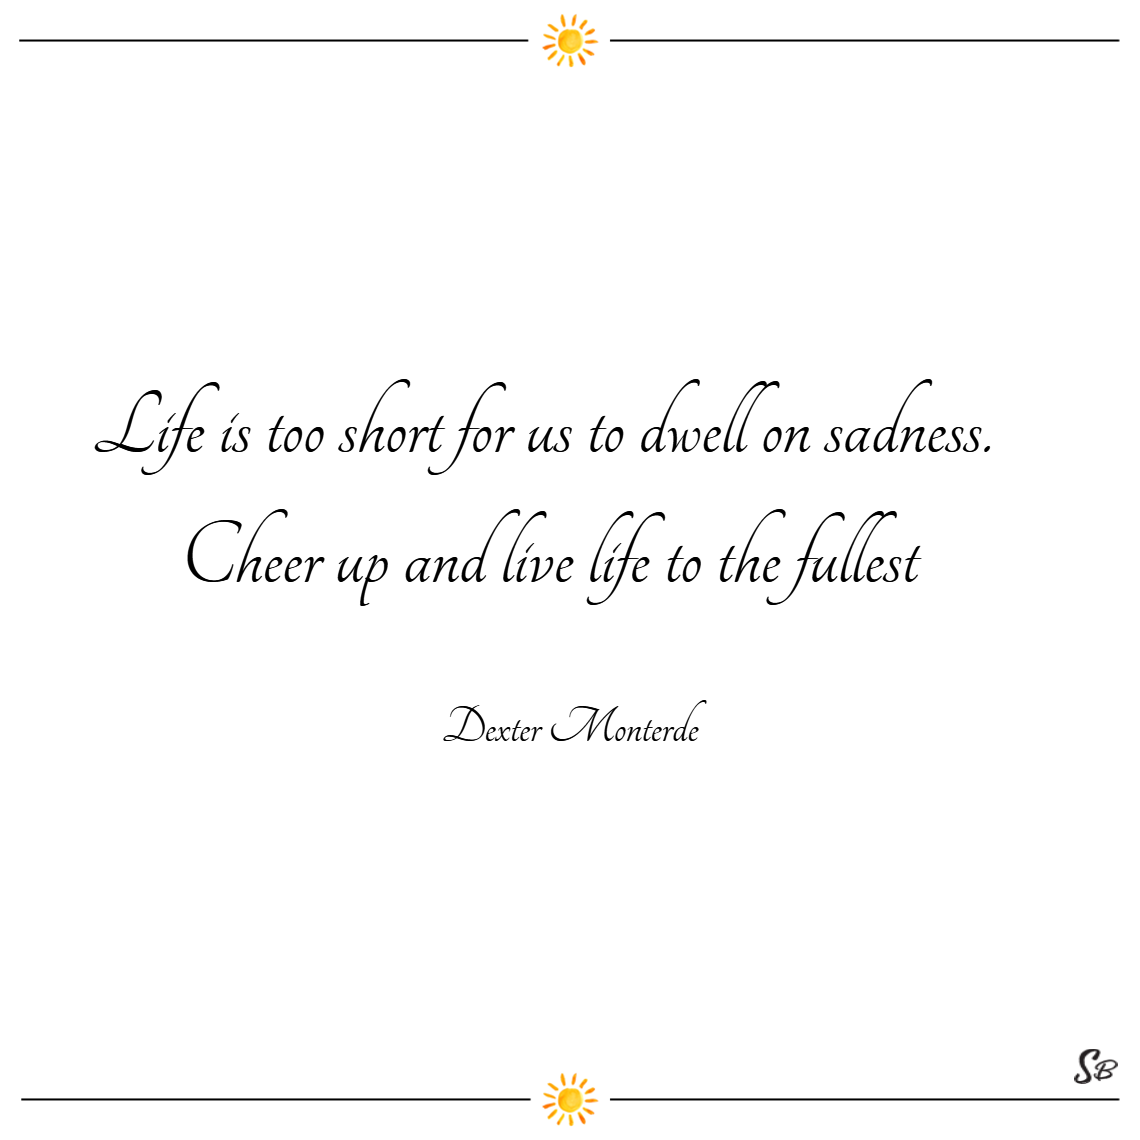 Life is too short for us to dwell on sadness. cheer up and live life to the fullest. – dexter monterde